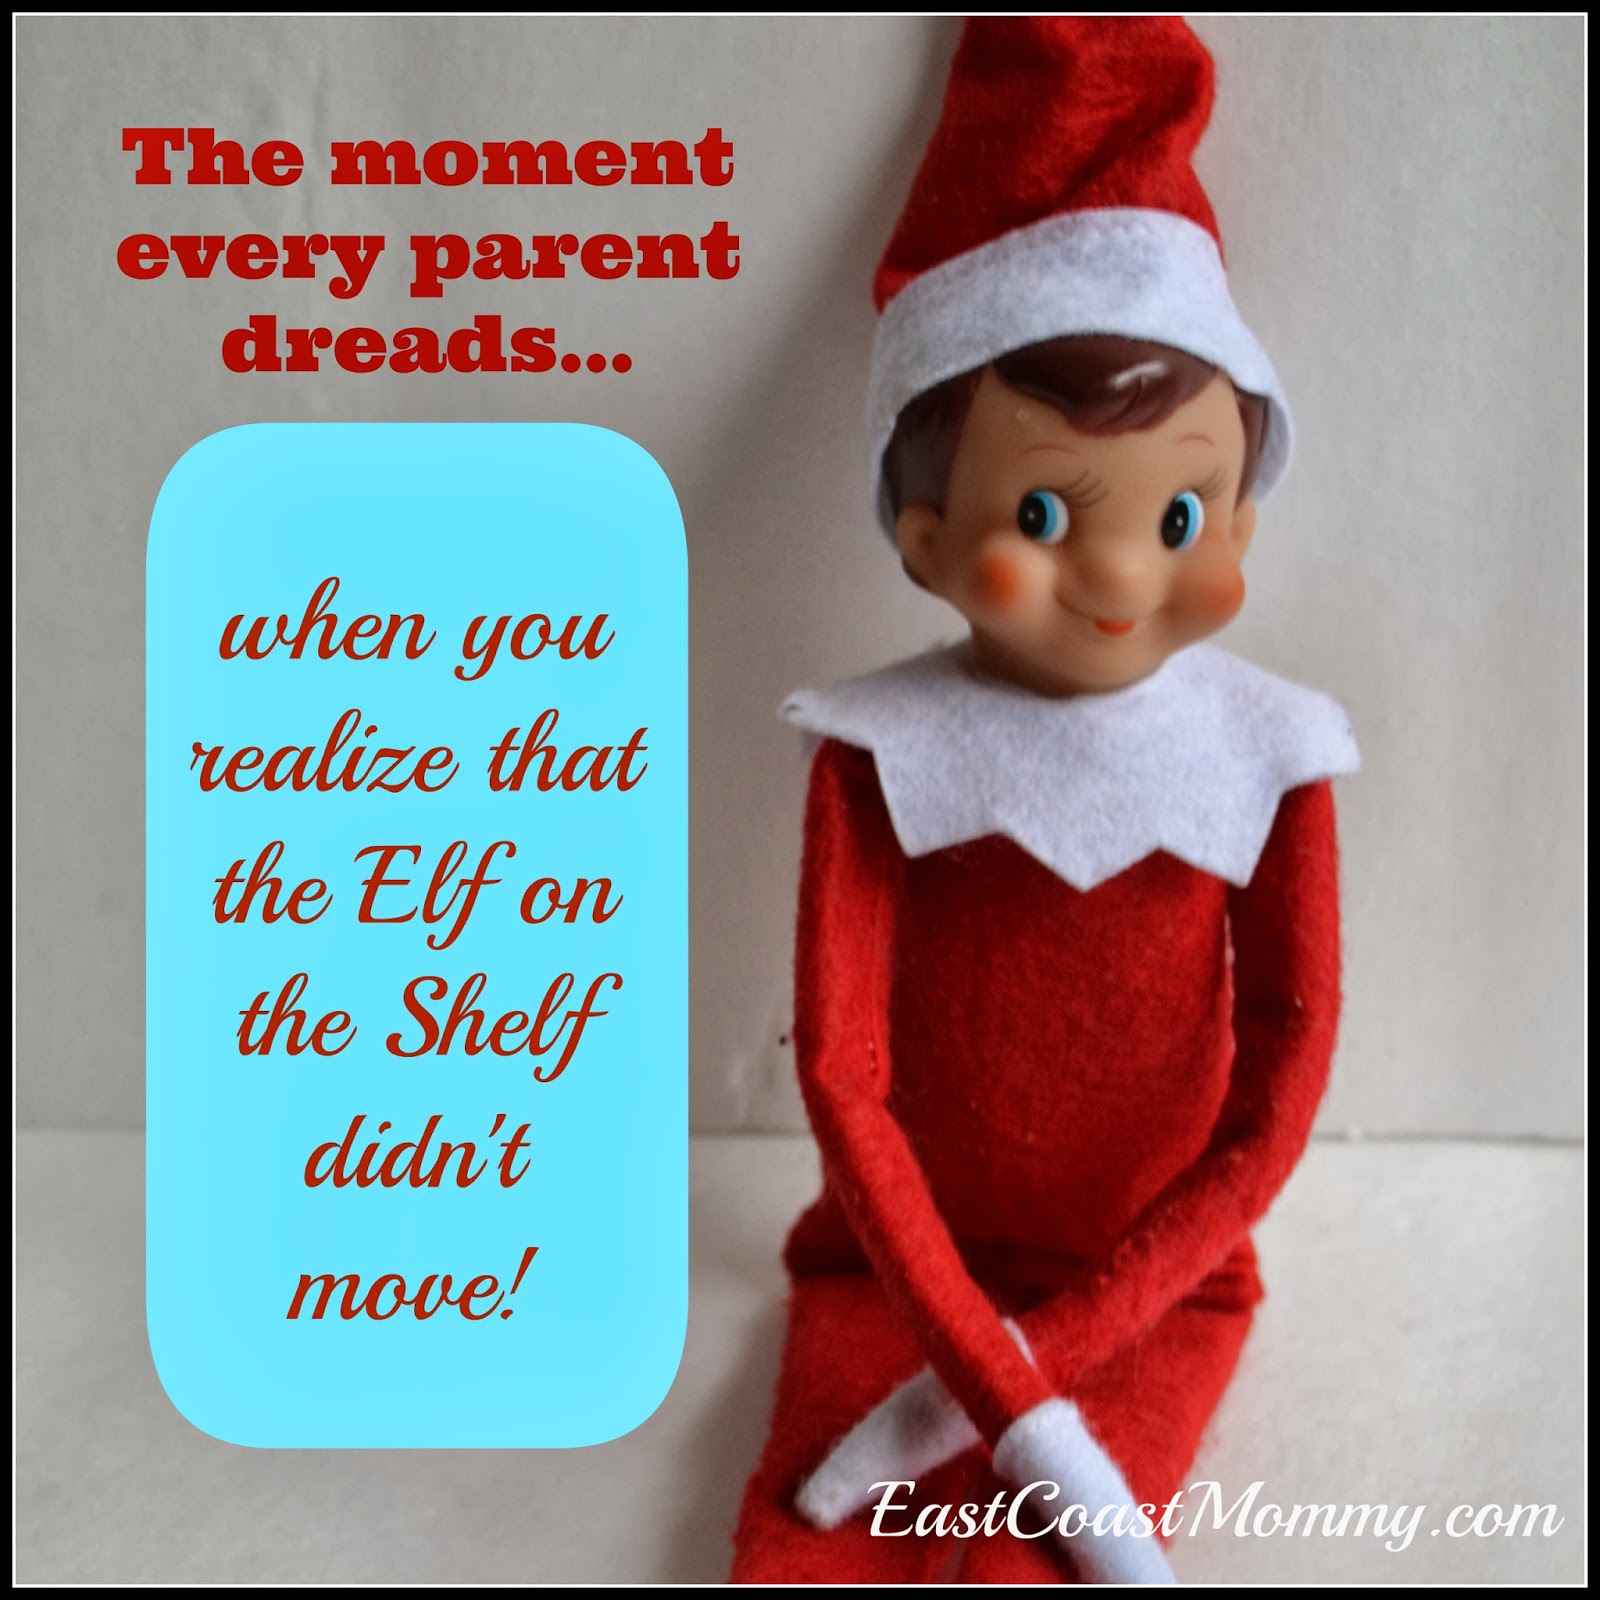 Even Santa understands that rewards should not be given unless they are earned, so he created the elf on the shelf — a person whose job it is to fly back to the North Pole nightly to let Santa.